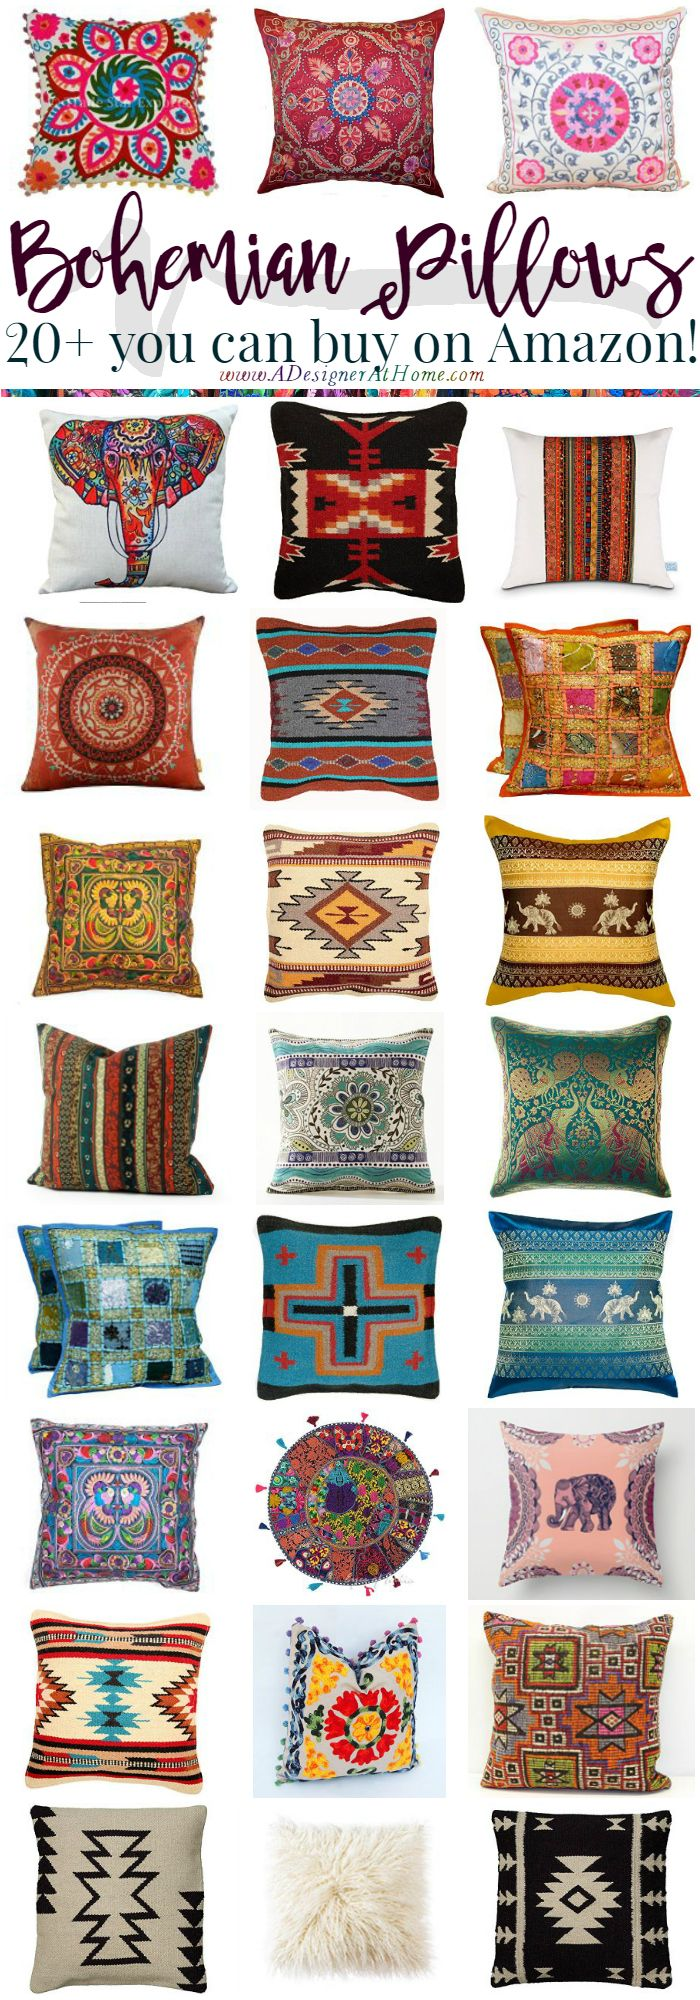 Diy Boho Throw Pillows : 25+ best ideas about Bohemian Pillows on Pinterest Bohemian interior, Boho pillows and Gypsy ...